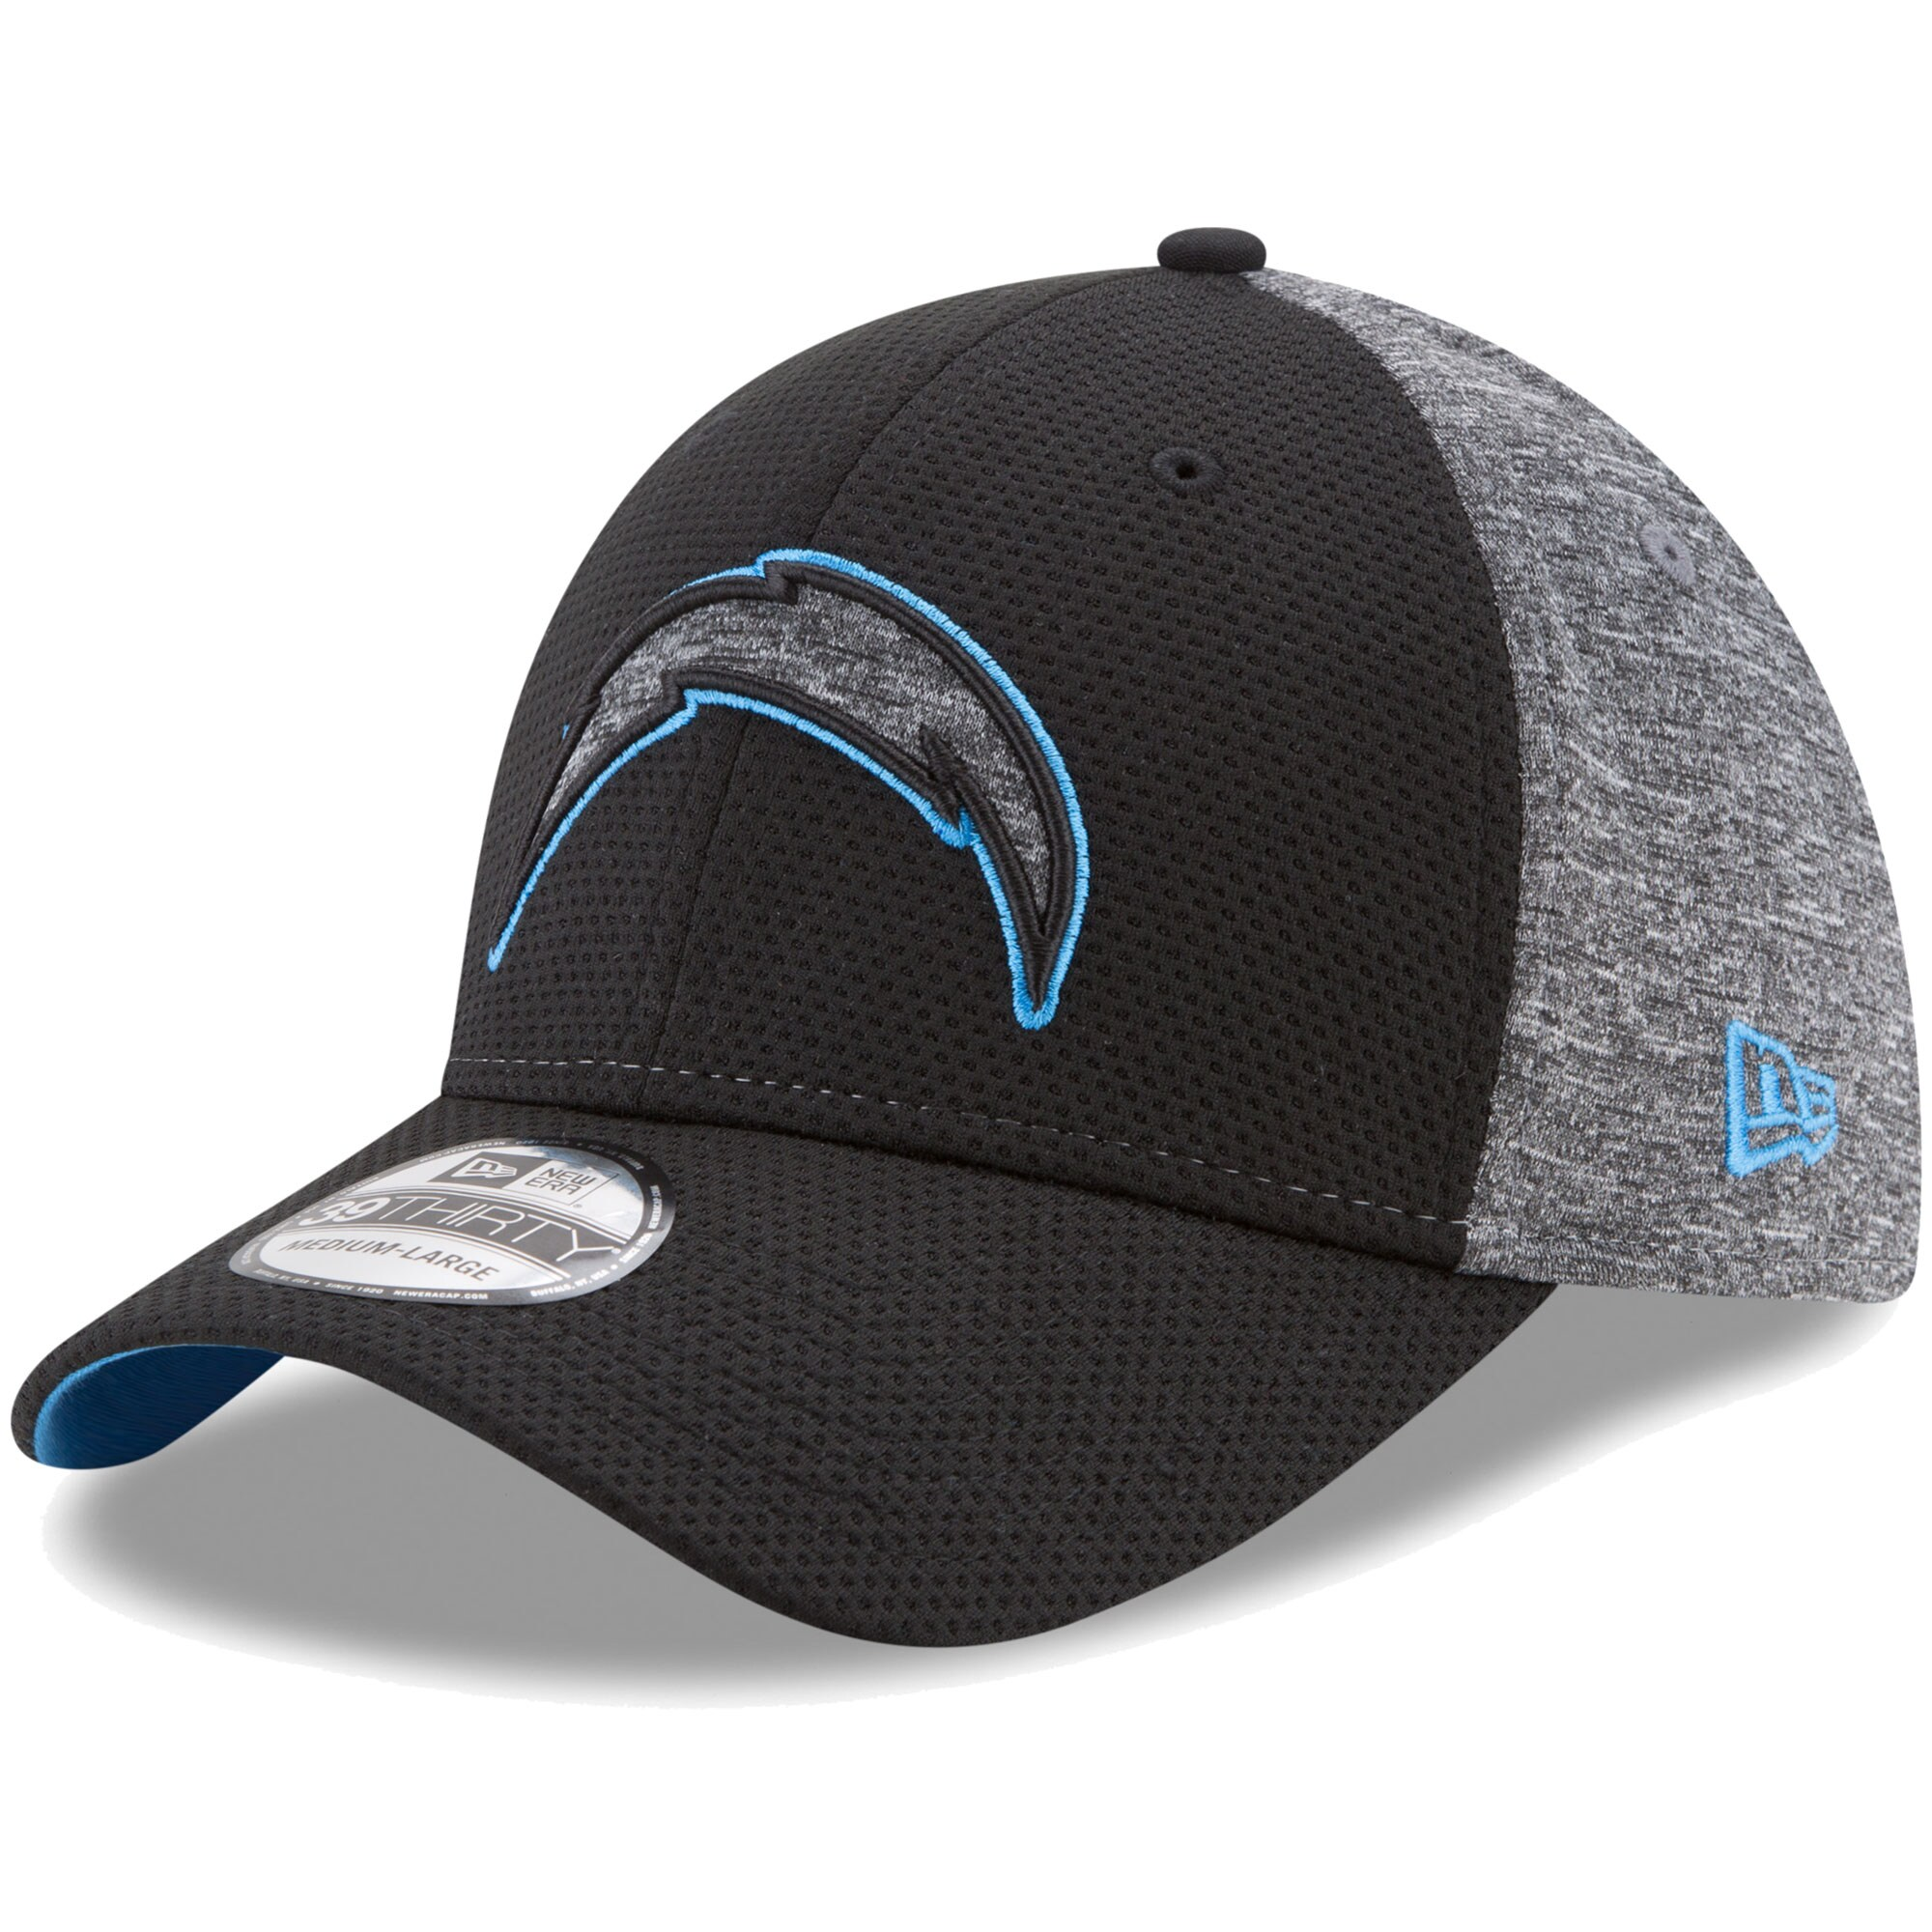 Los Angeles Chargers New Era Fierce Fill 39THIRTY Flex Hat - Black/Heathered Gray